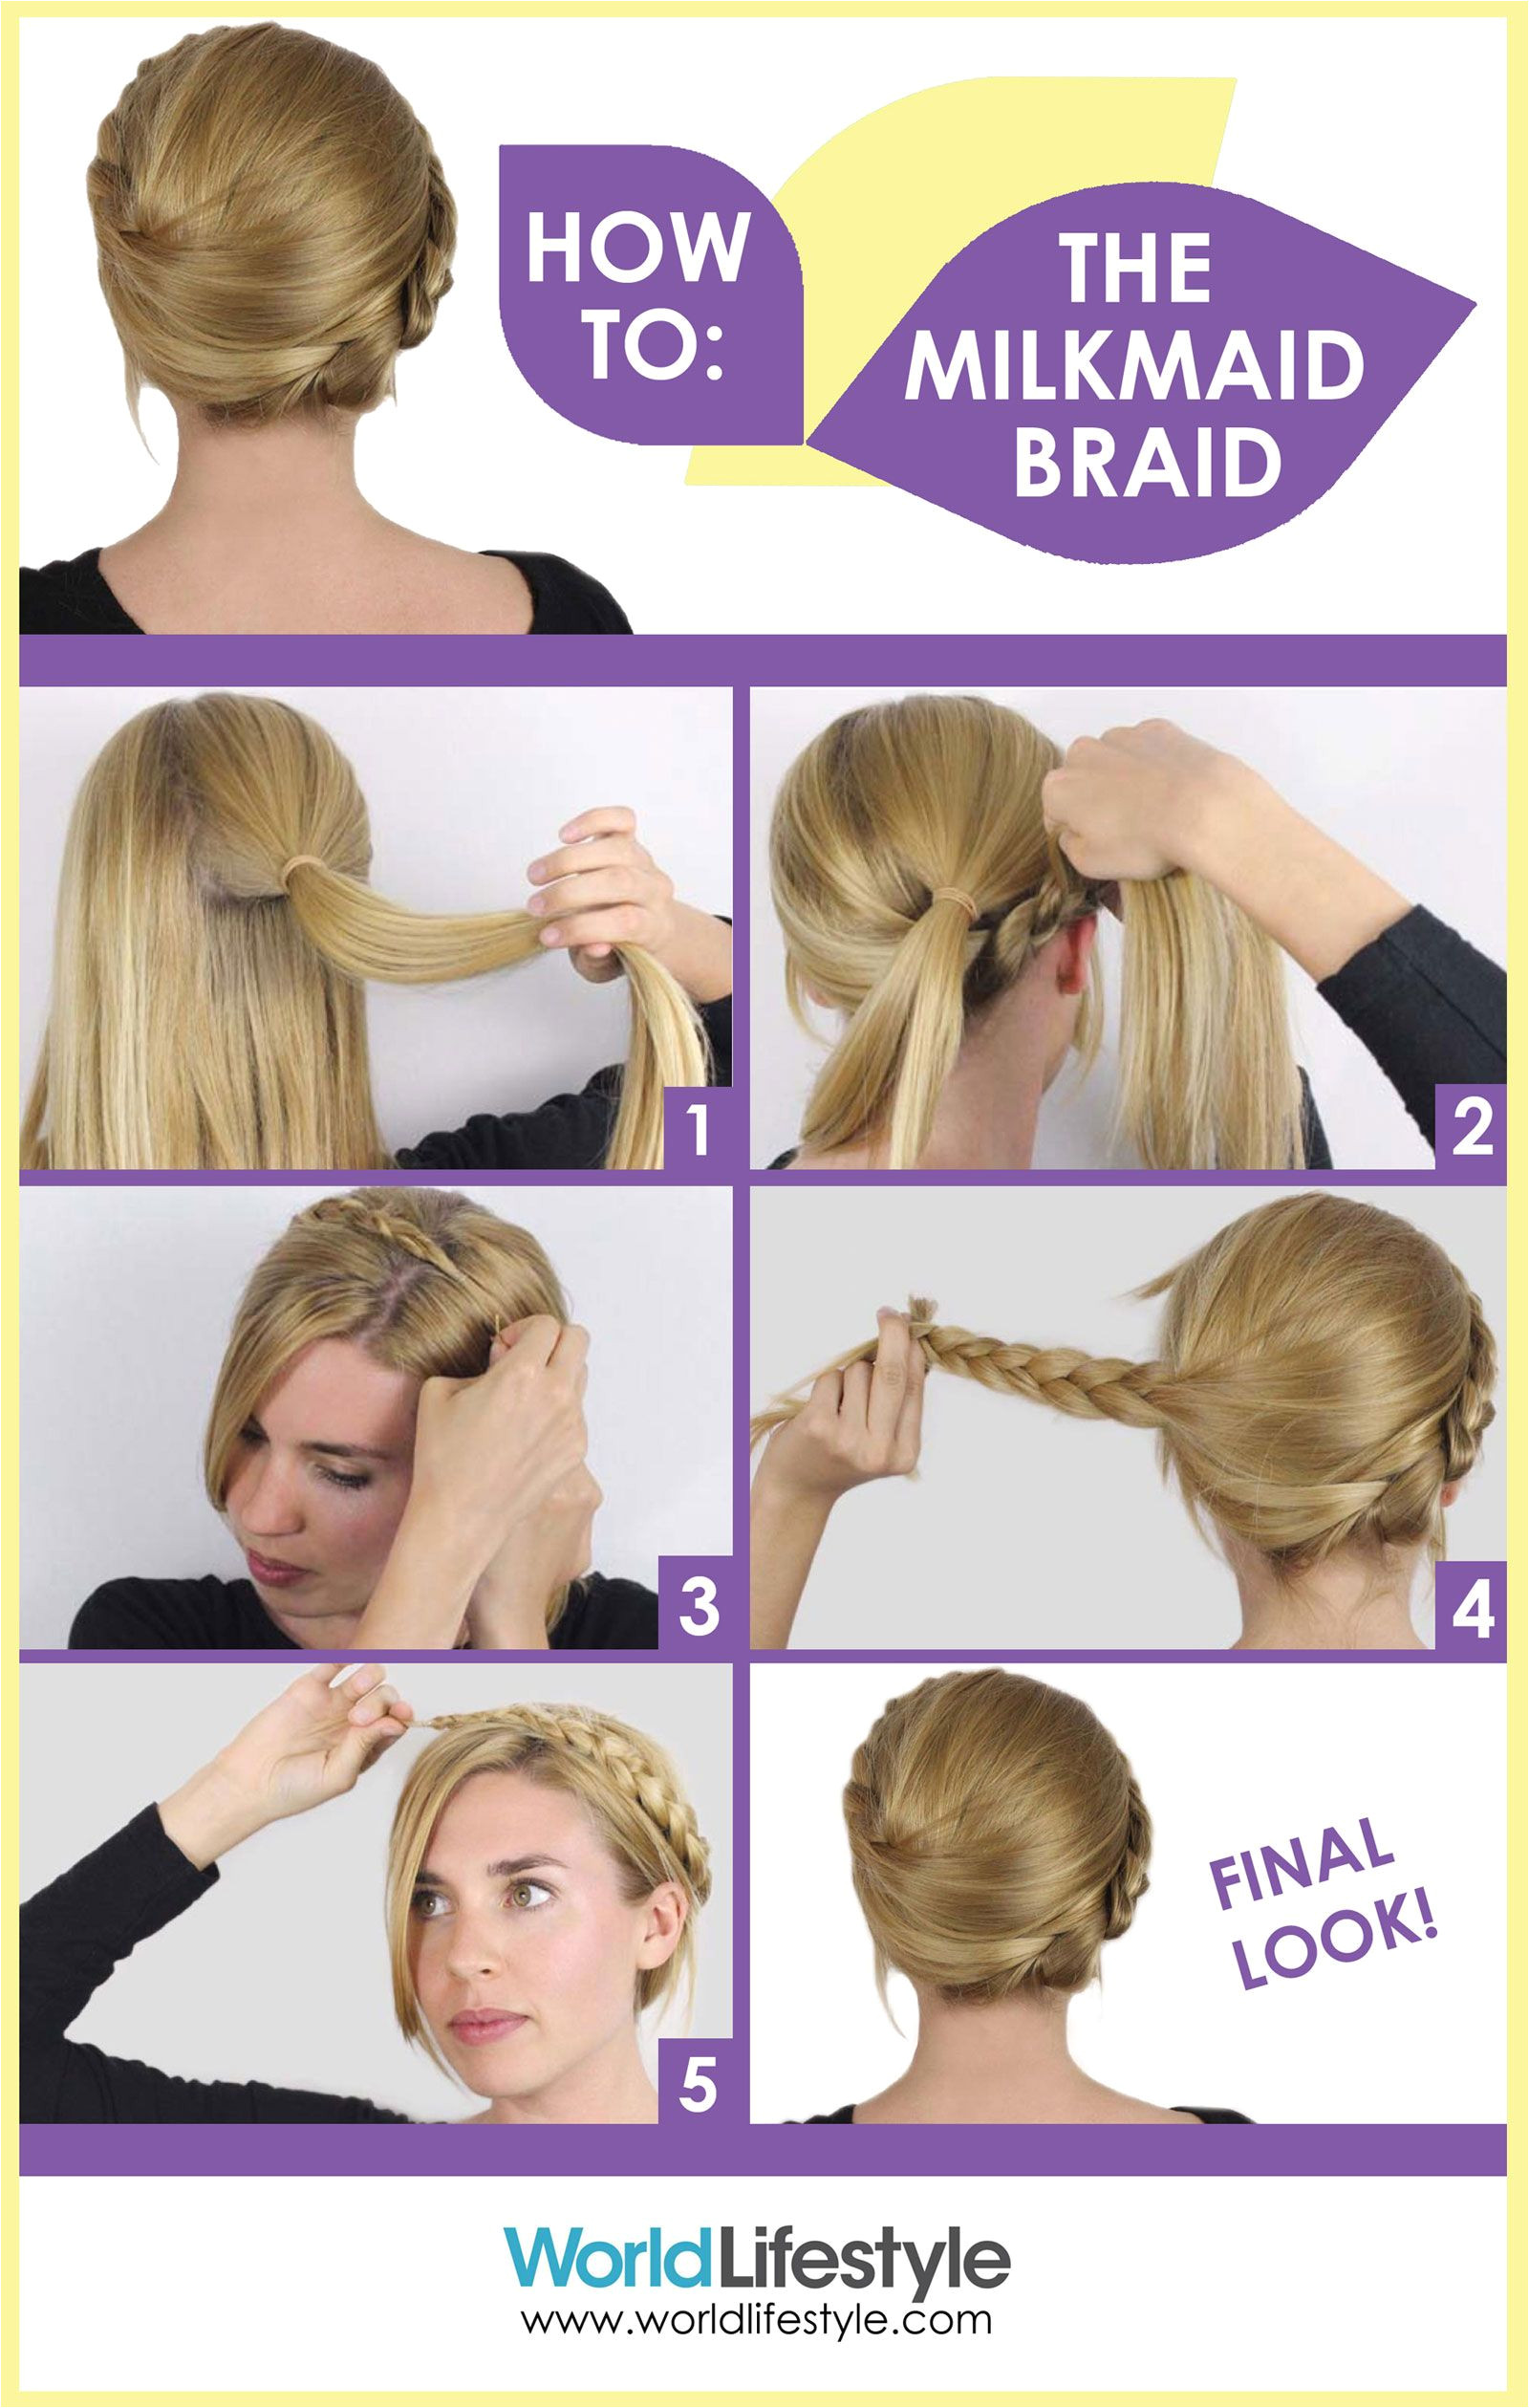 How to do an easy milkmaid braid with hair guru Sasha Coefield